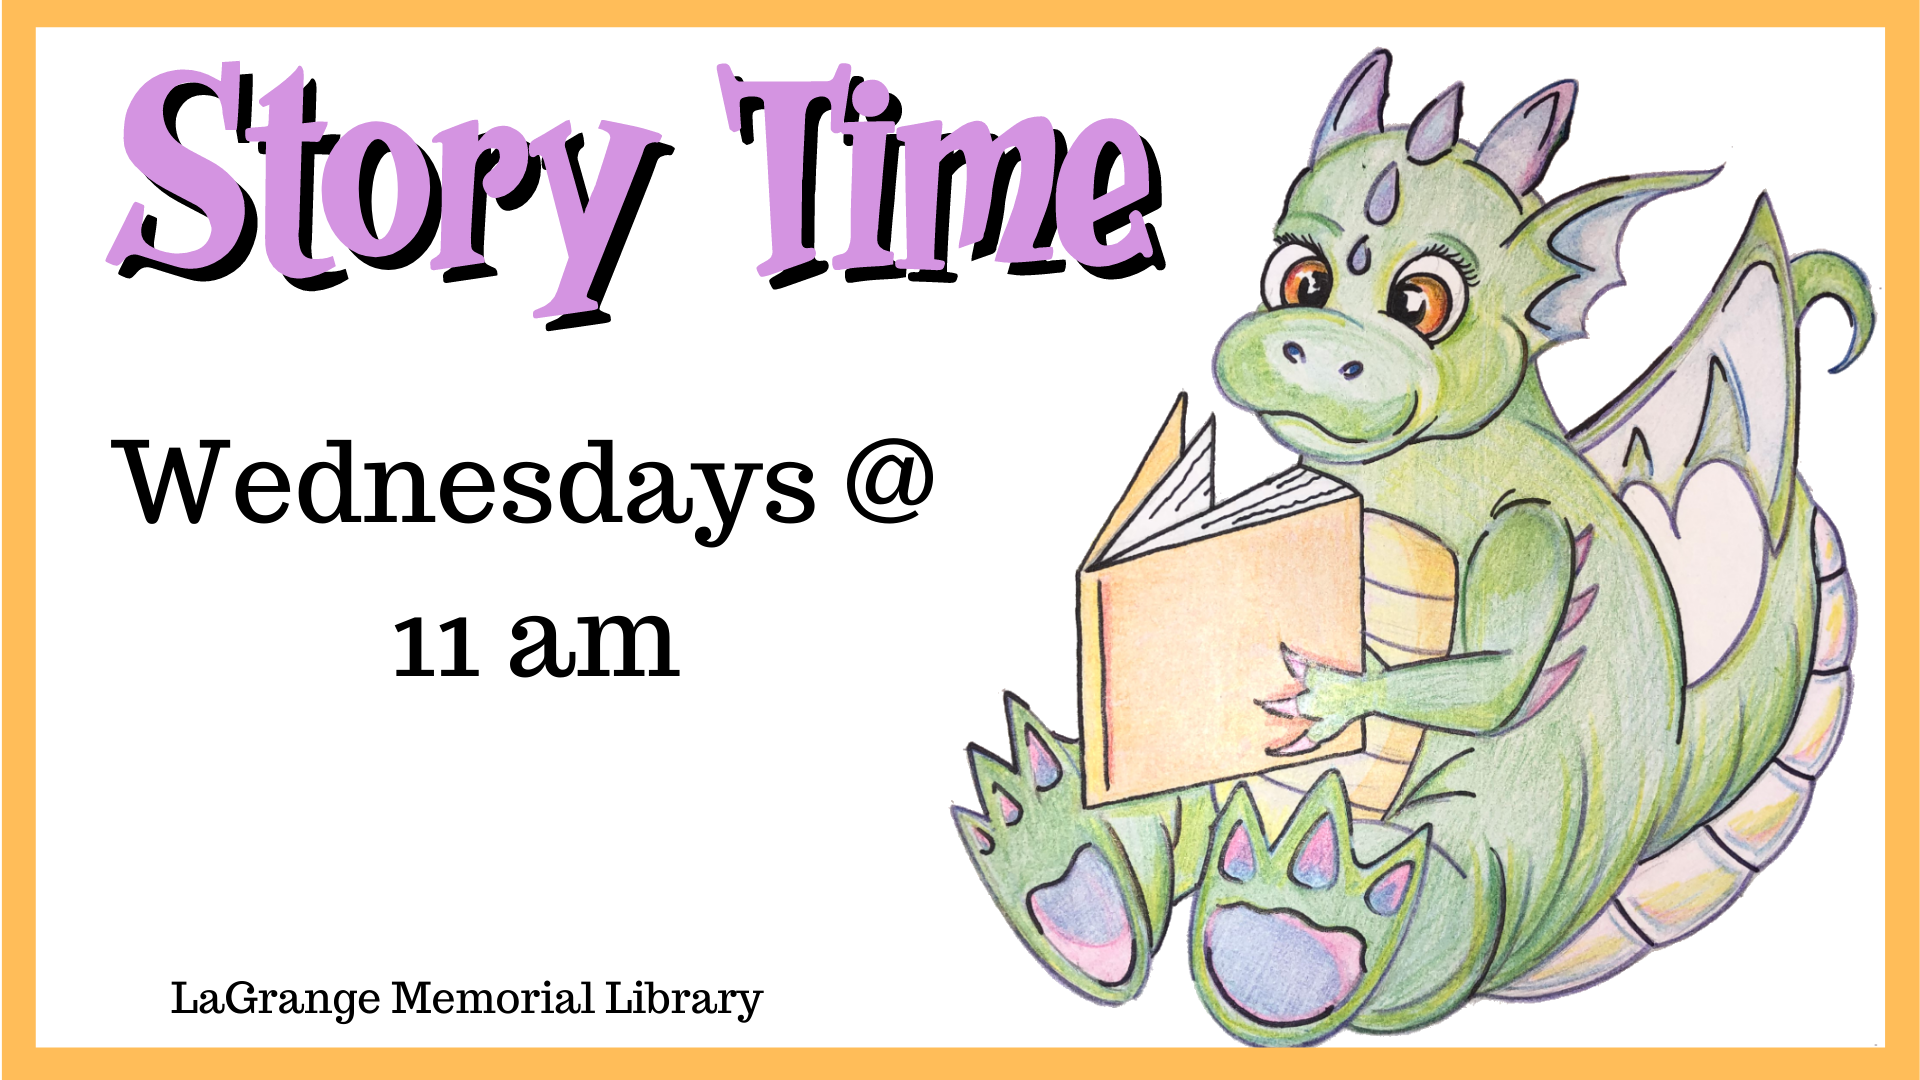 Story Time Wednesdays at 11 am at the LaGrange Memorial Library